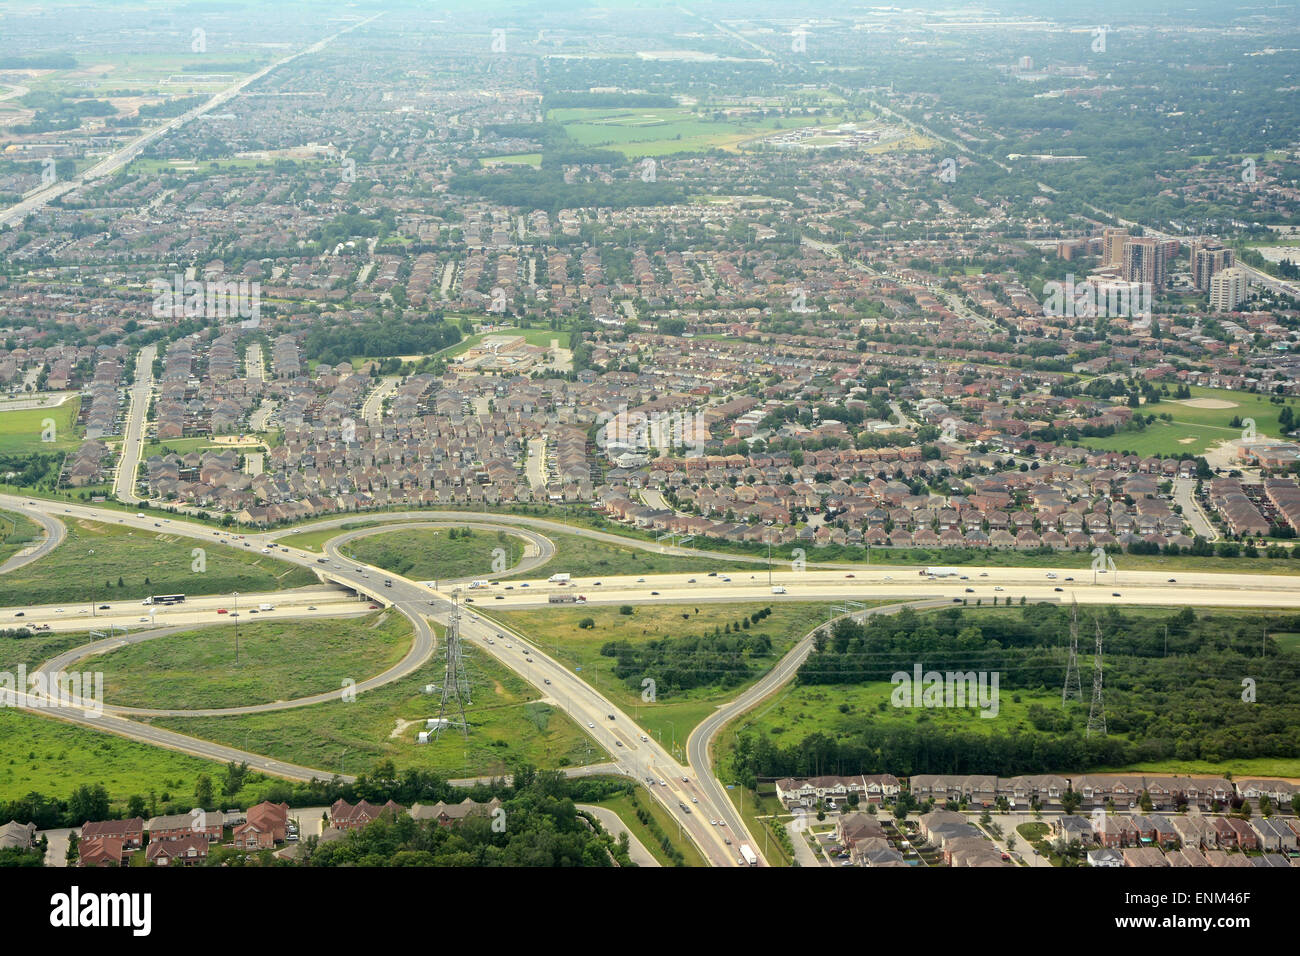 Suburbs and highways Aerial, Toronto, Canada - Stock Image